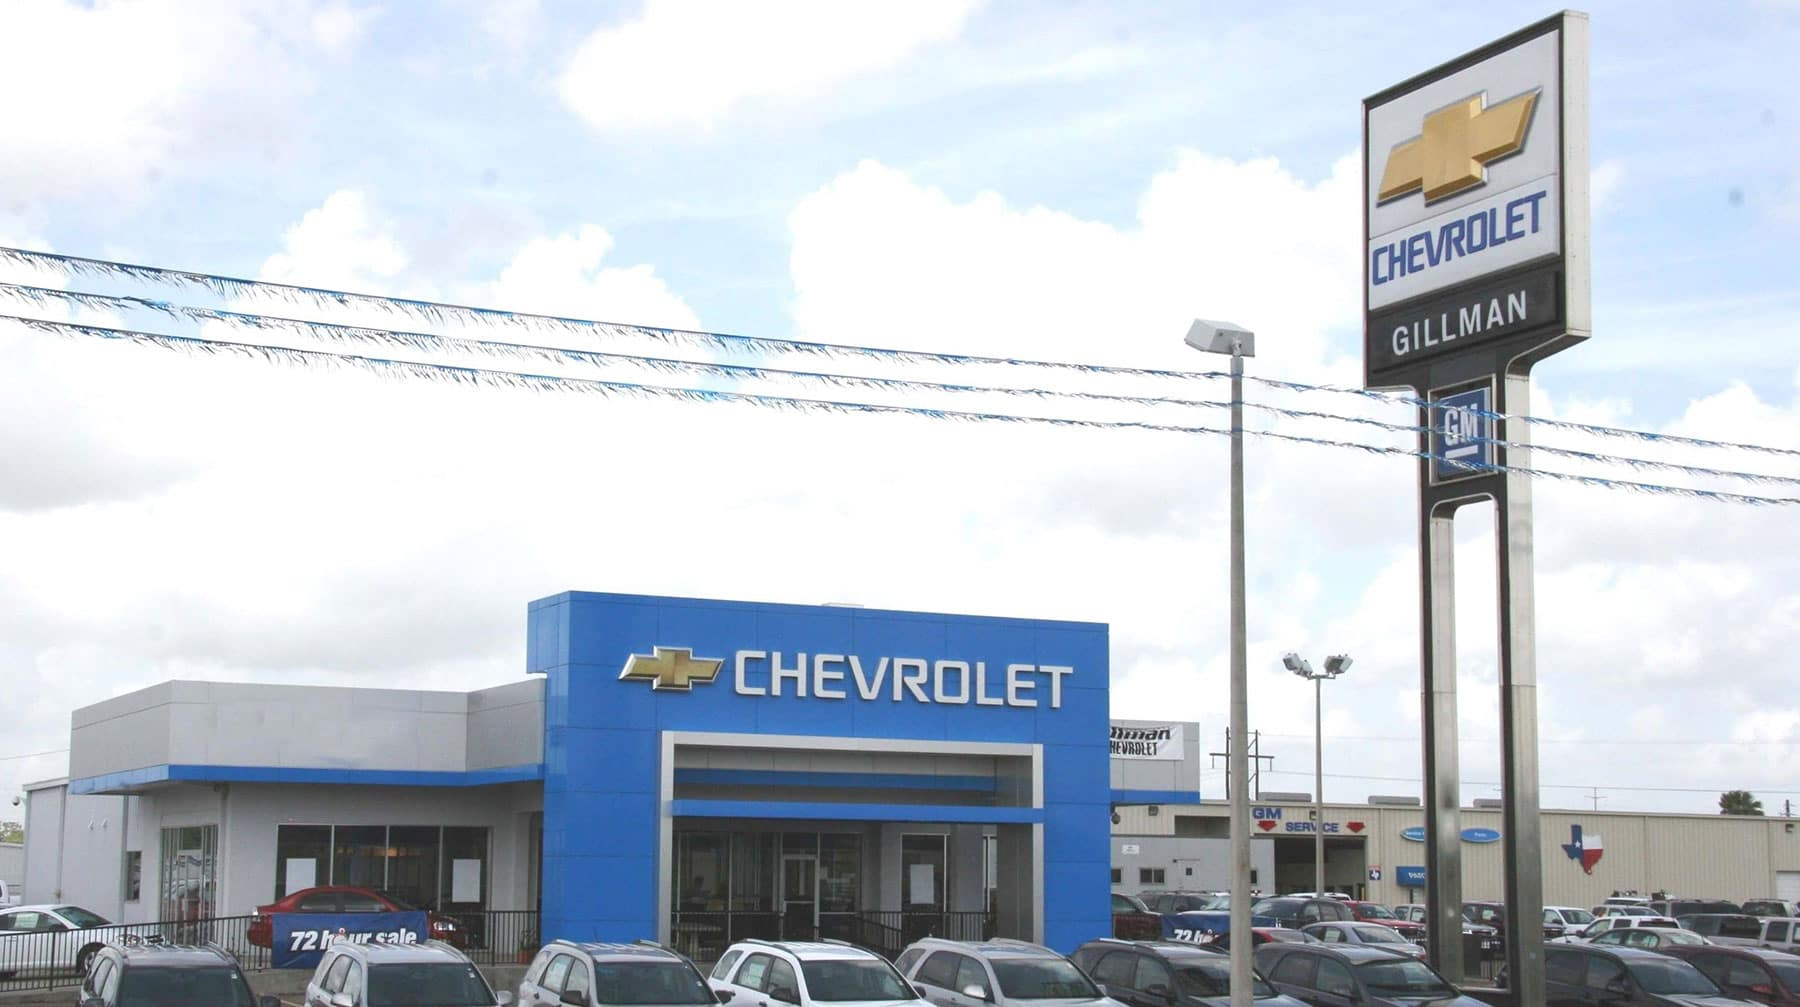 Exterior view of dealership